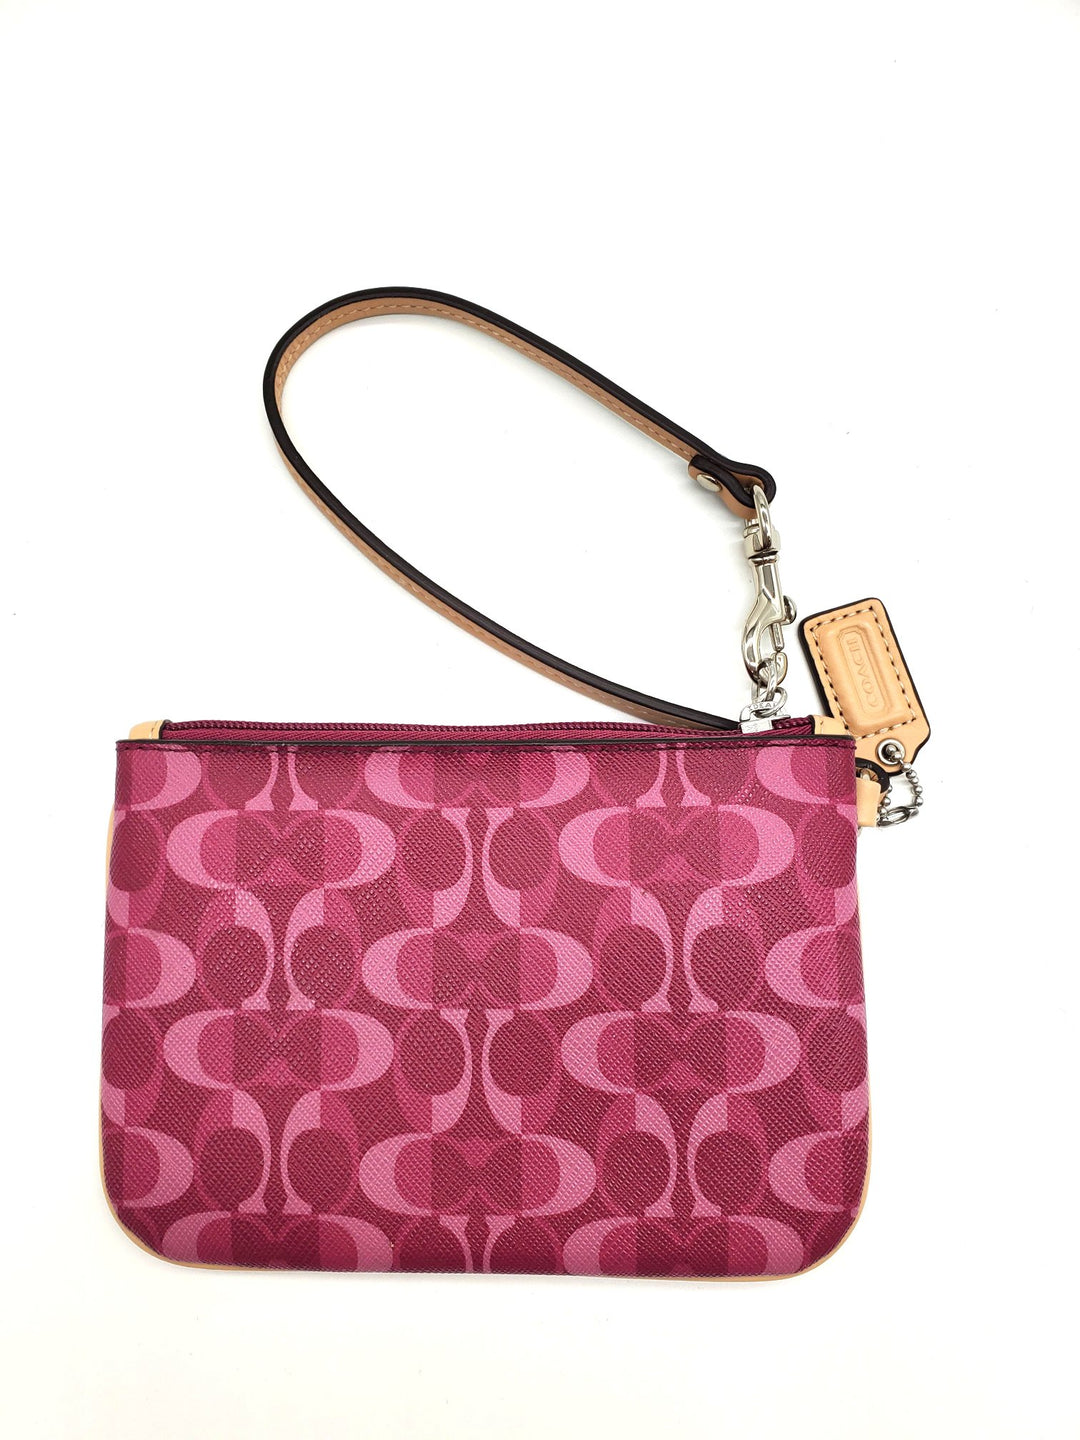 Wristlet By Coach - BRAND: COACH <BR>STYLE: WRISTLET <BR>COLOR: MONOGRAM <BR>SKU: 262-26275-62645<BR>AS IS<BR>DESIGNER ITEM FINAL SALE